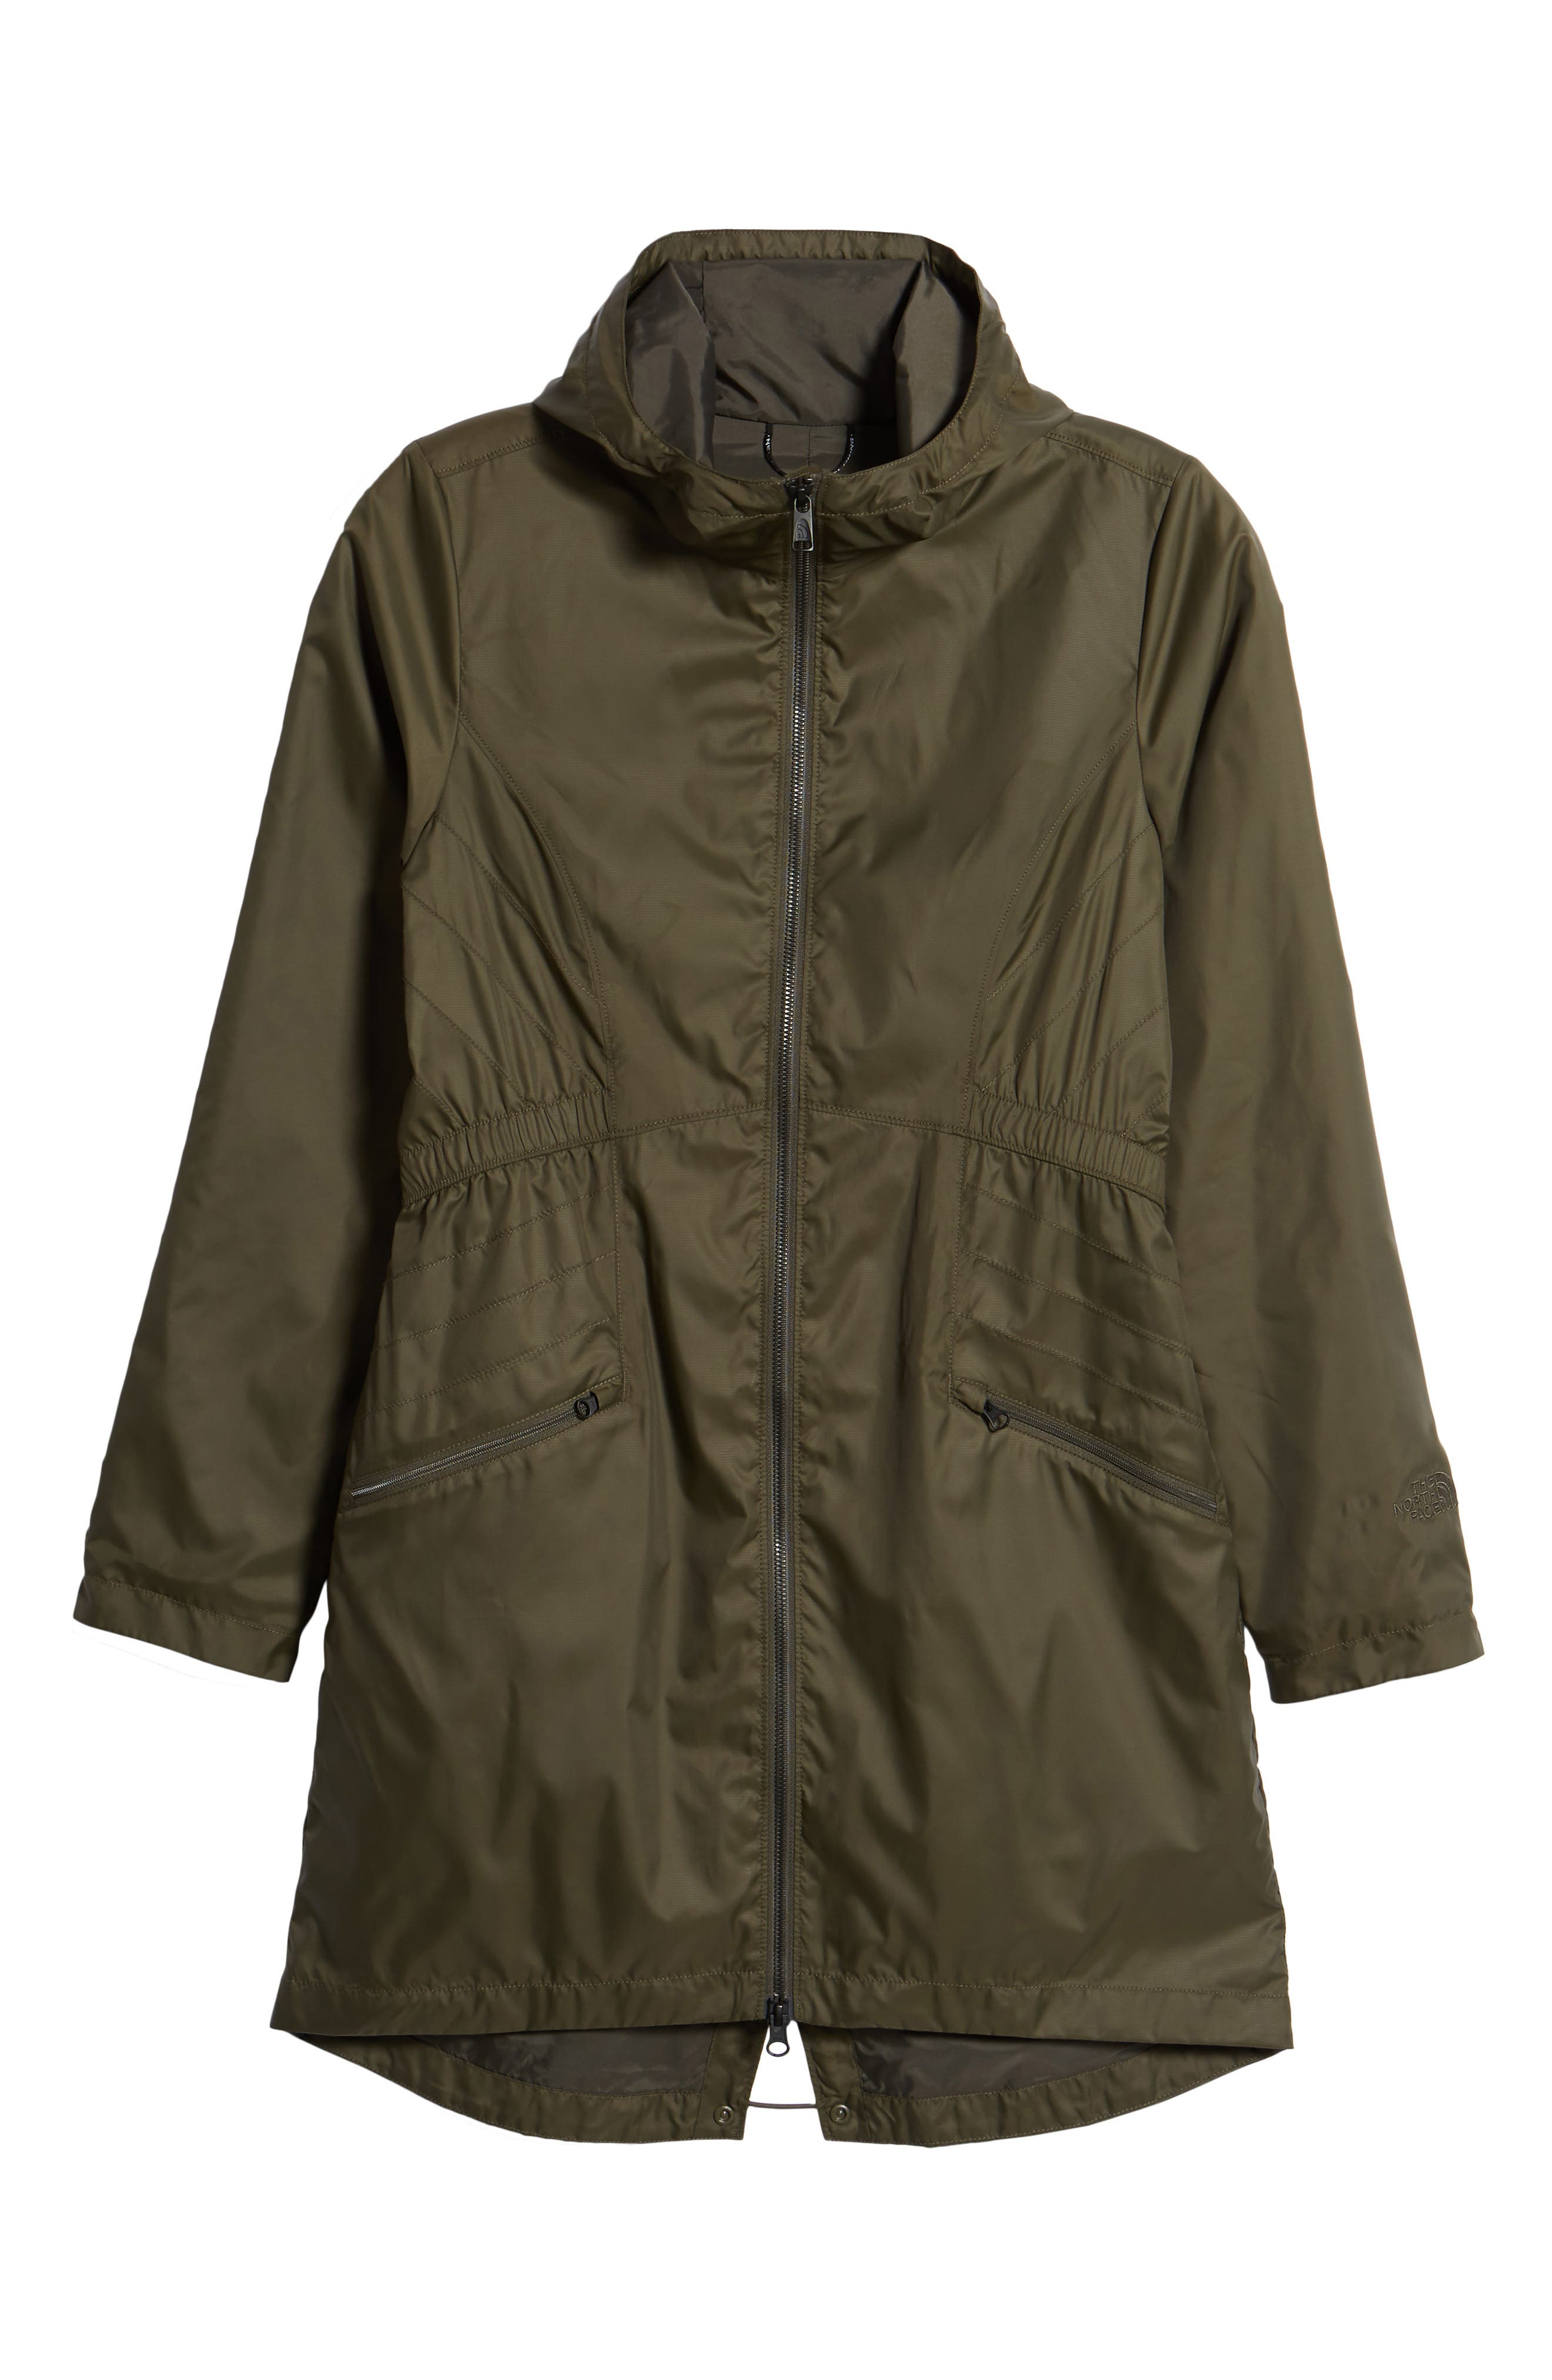 THE NORTH FACE, Rissy 2 Wind Resistant Jacket, Alternate thumbnail 6, color, 302